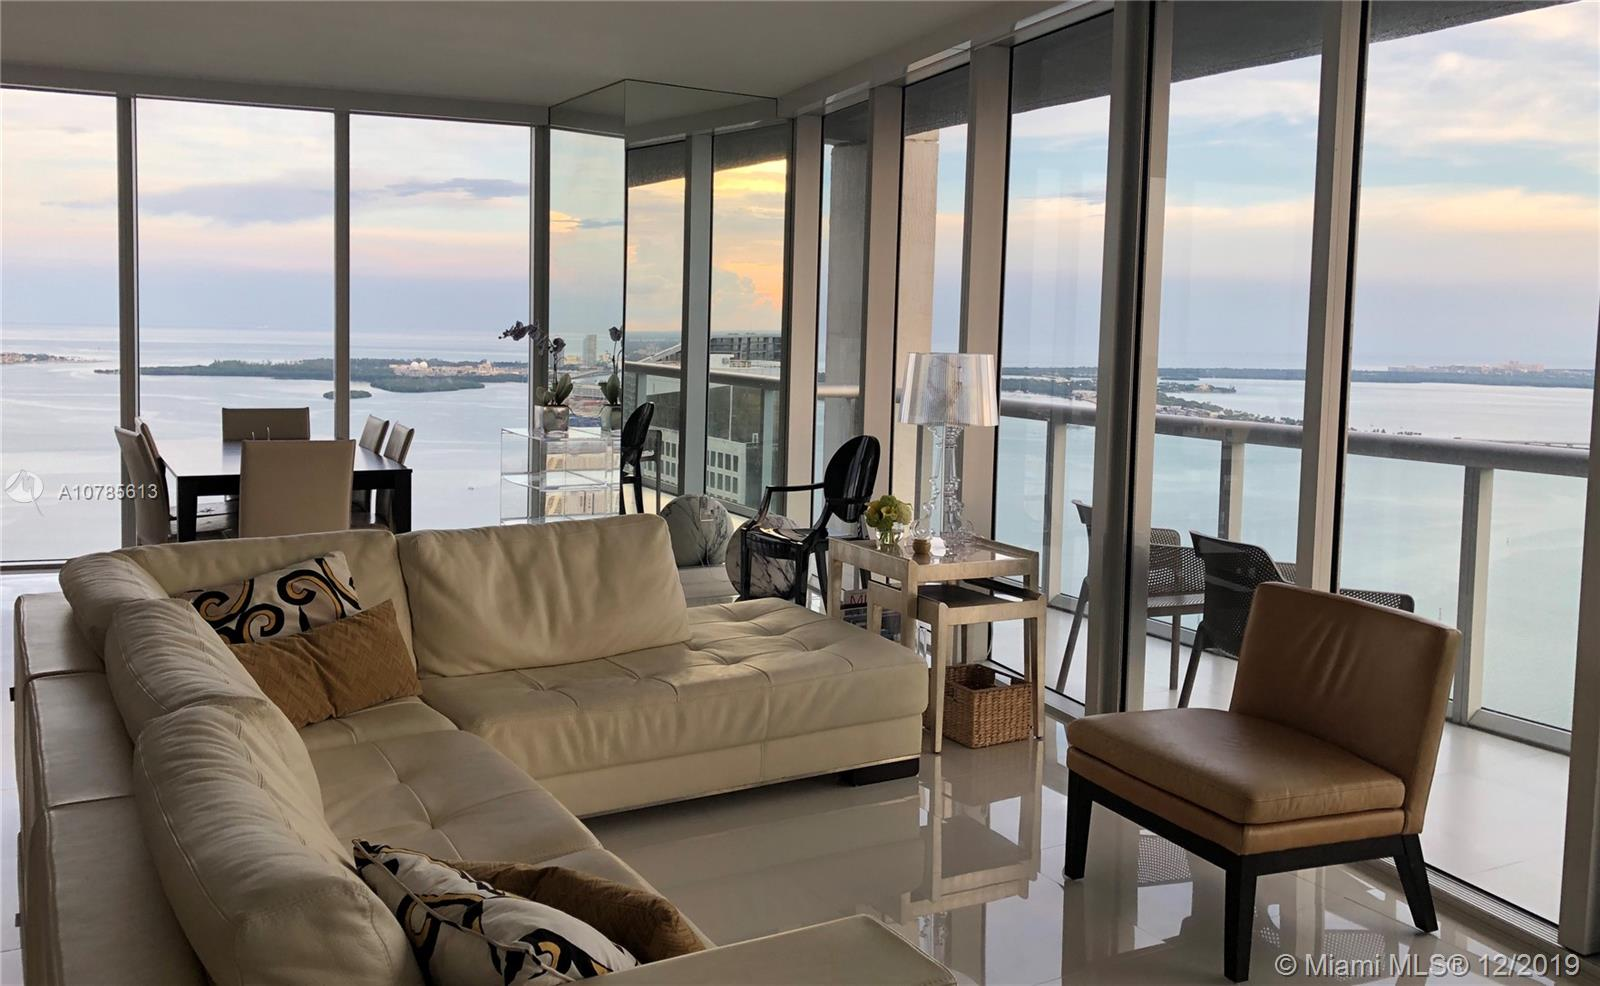 495  Brickell Ave #5401 For Sale A10785613, FL